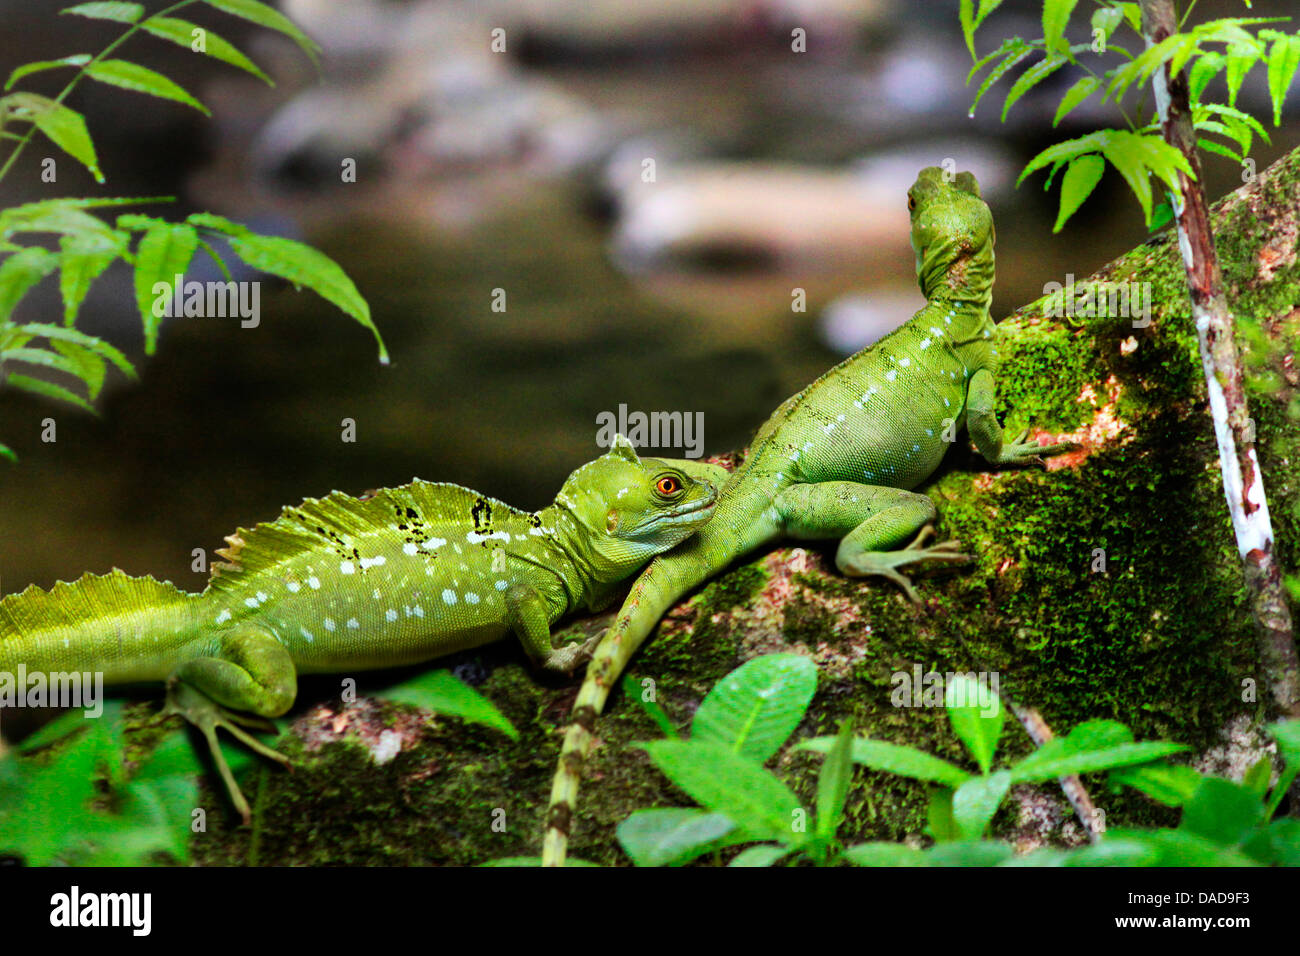 green basilisk, plumed basilisk, double-crested basilisk (Basiliscus plumifrons), two exemplars sitting on a mossy - Stock Image